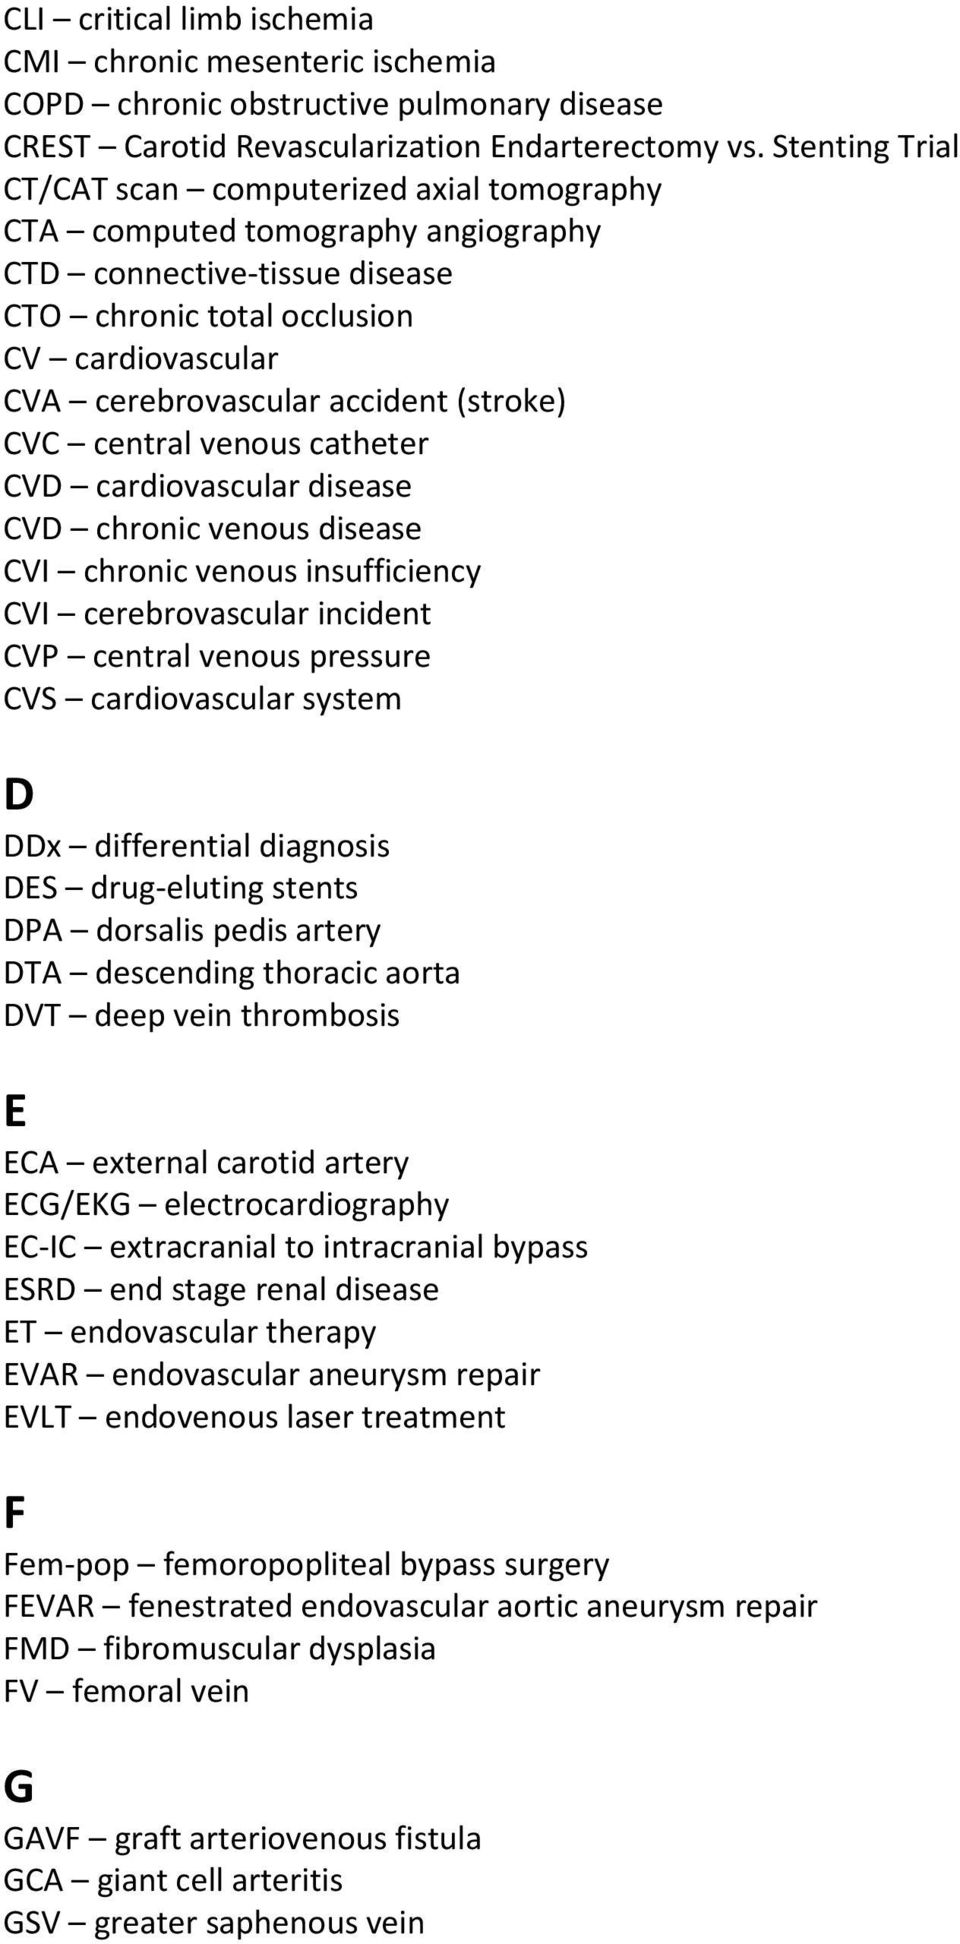 Vascular Surgery Abbreviations Below Is A List Of Medical Abbreviations Commonly Found In Vascular Surgery Articles Textbooks And Other Resources Pdf Free Download